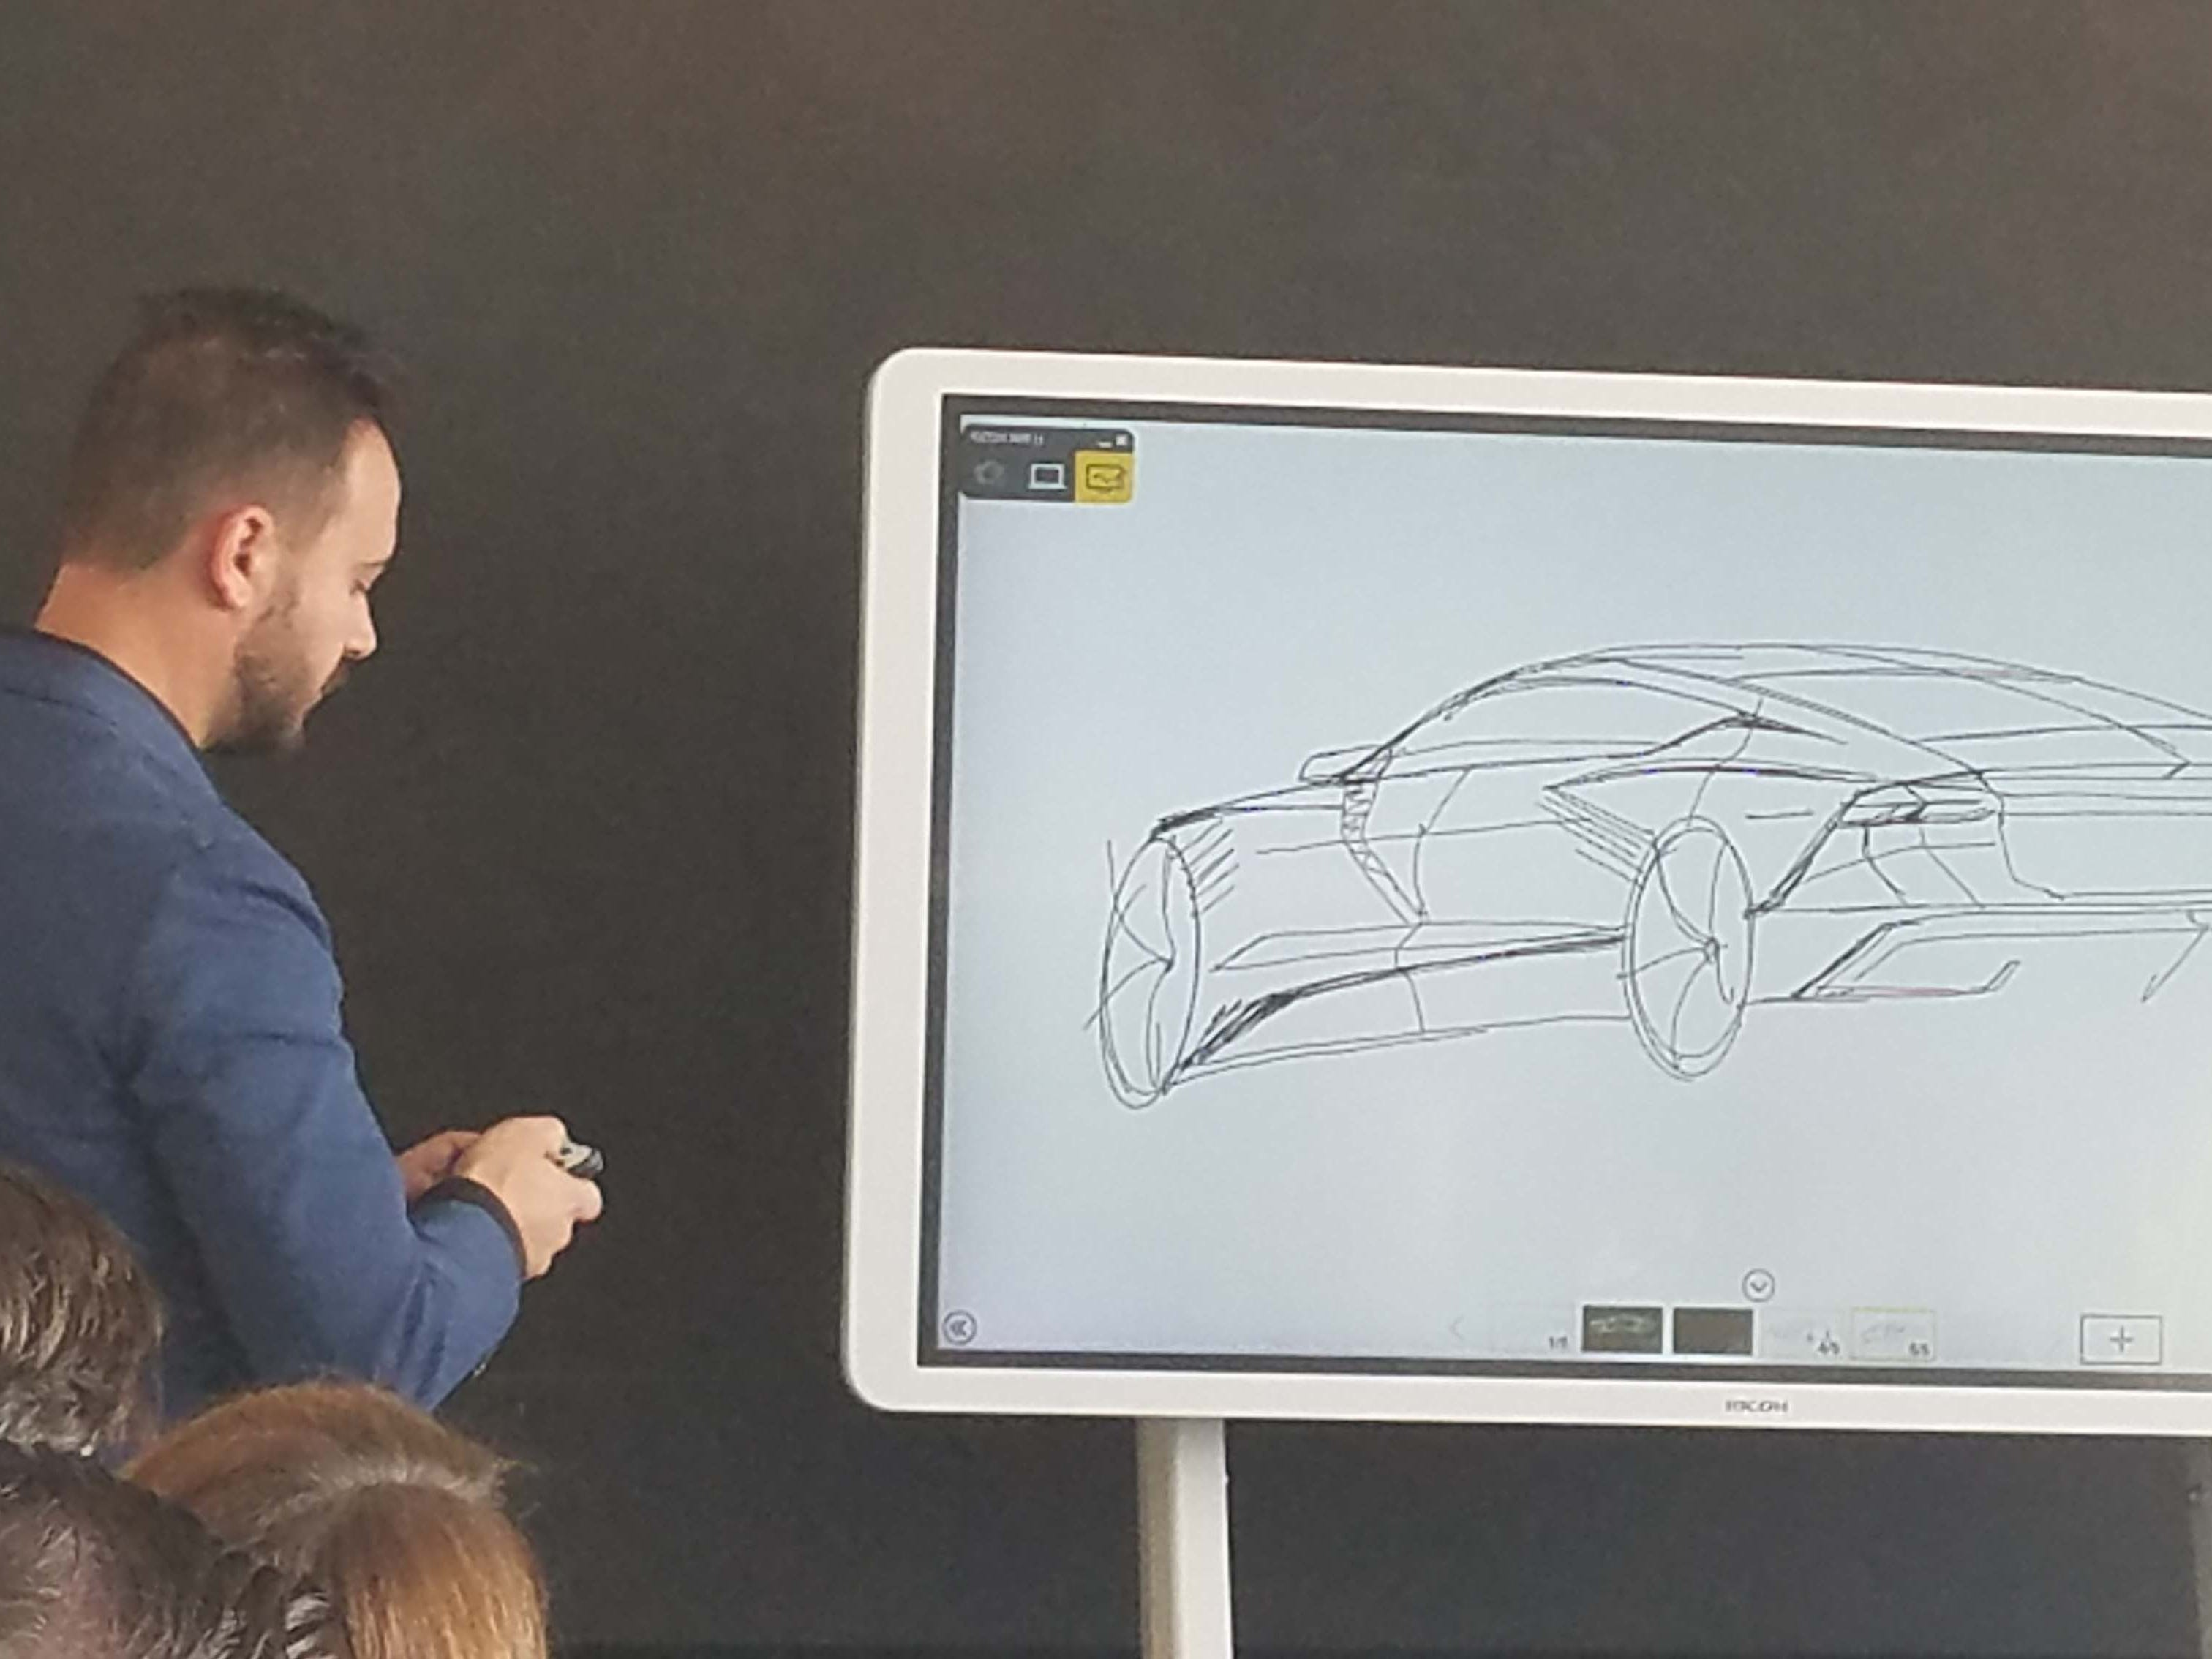 Audi A7 designer Sebastiano Russo sketches the sportback design on a digital pad.